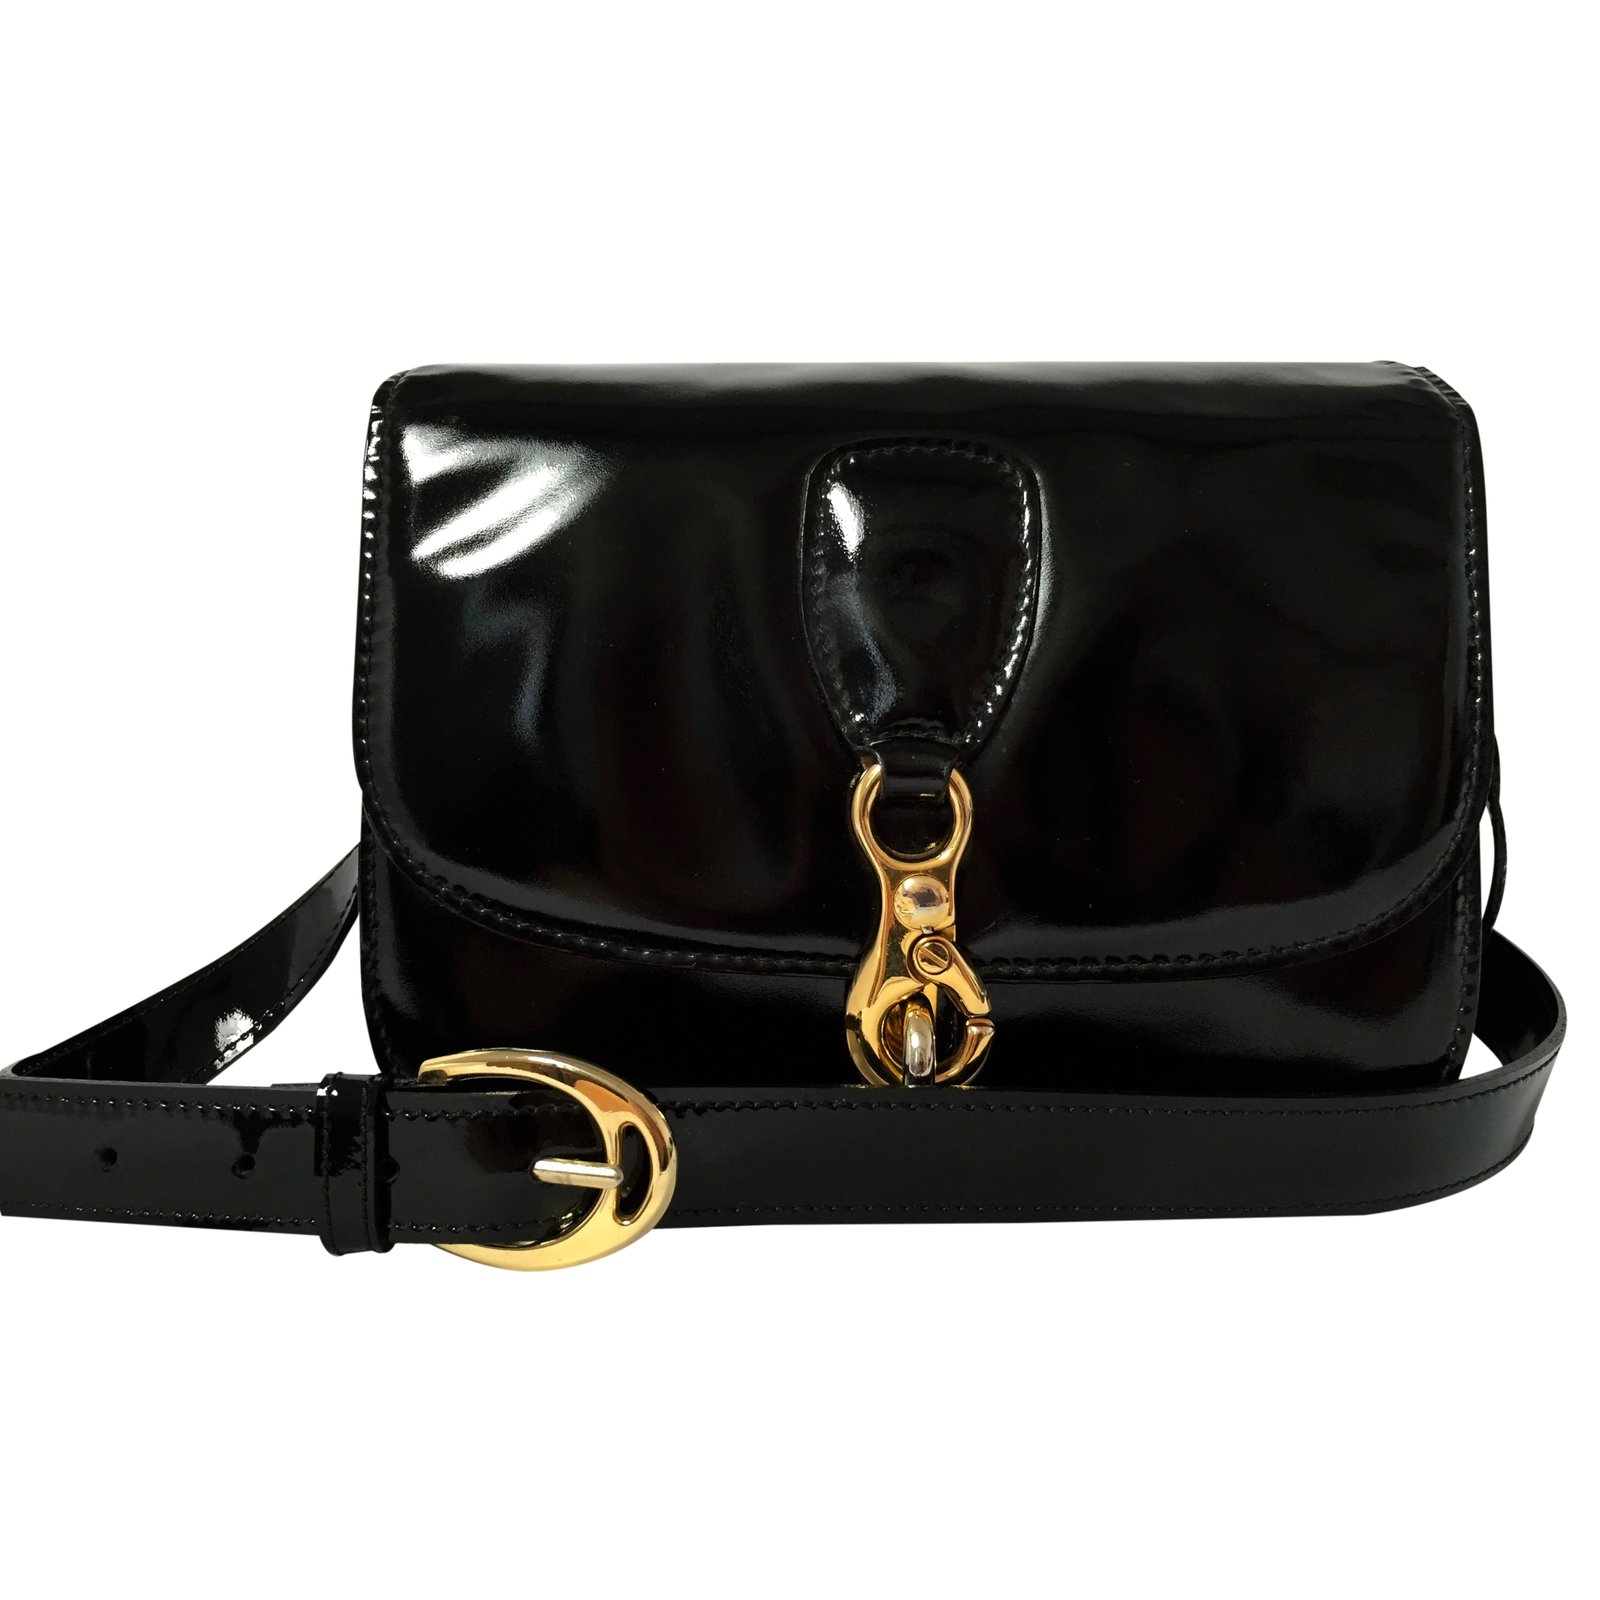 b9cda75b01 Céline Handbag Handbags Patent leather Black ref.24784 - Joli Closet